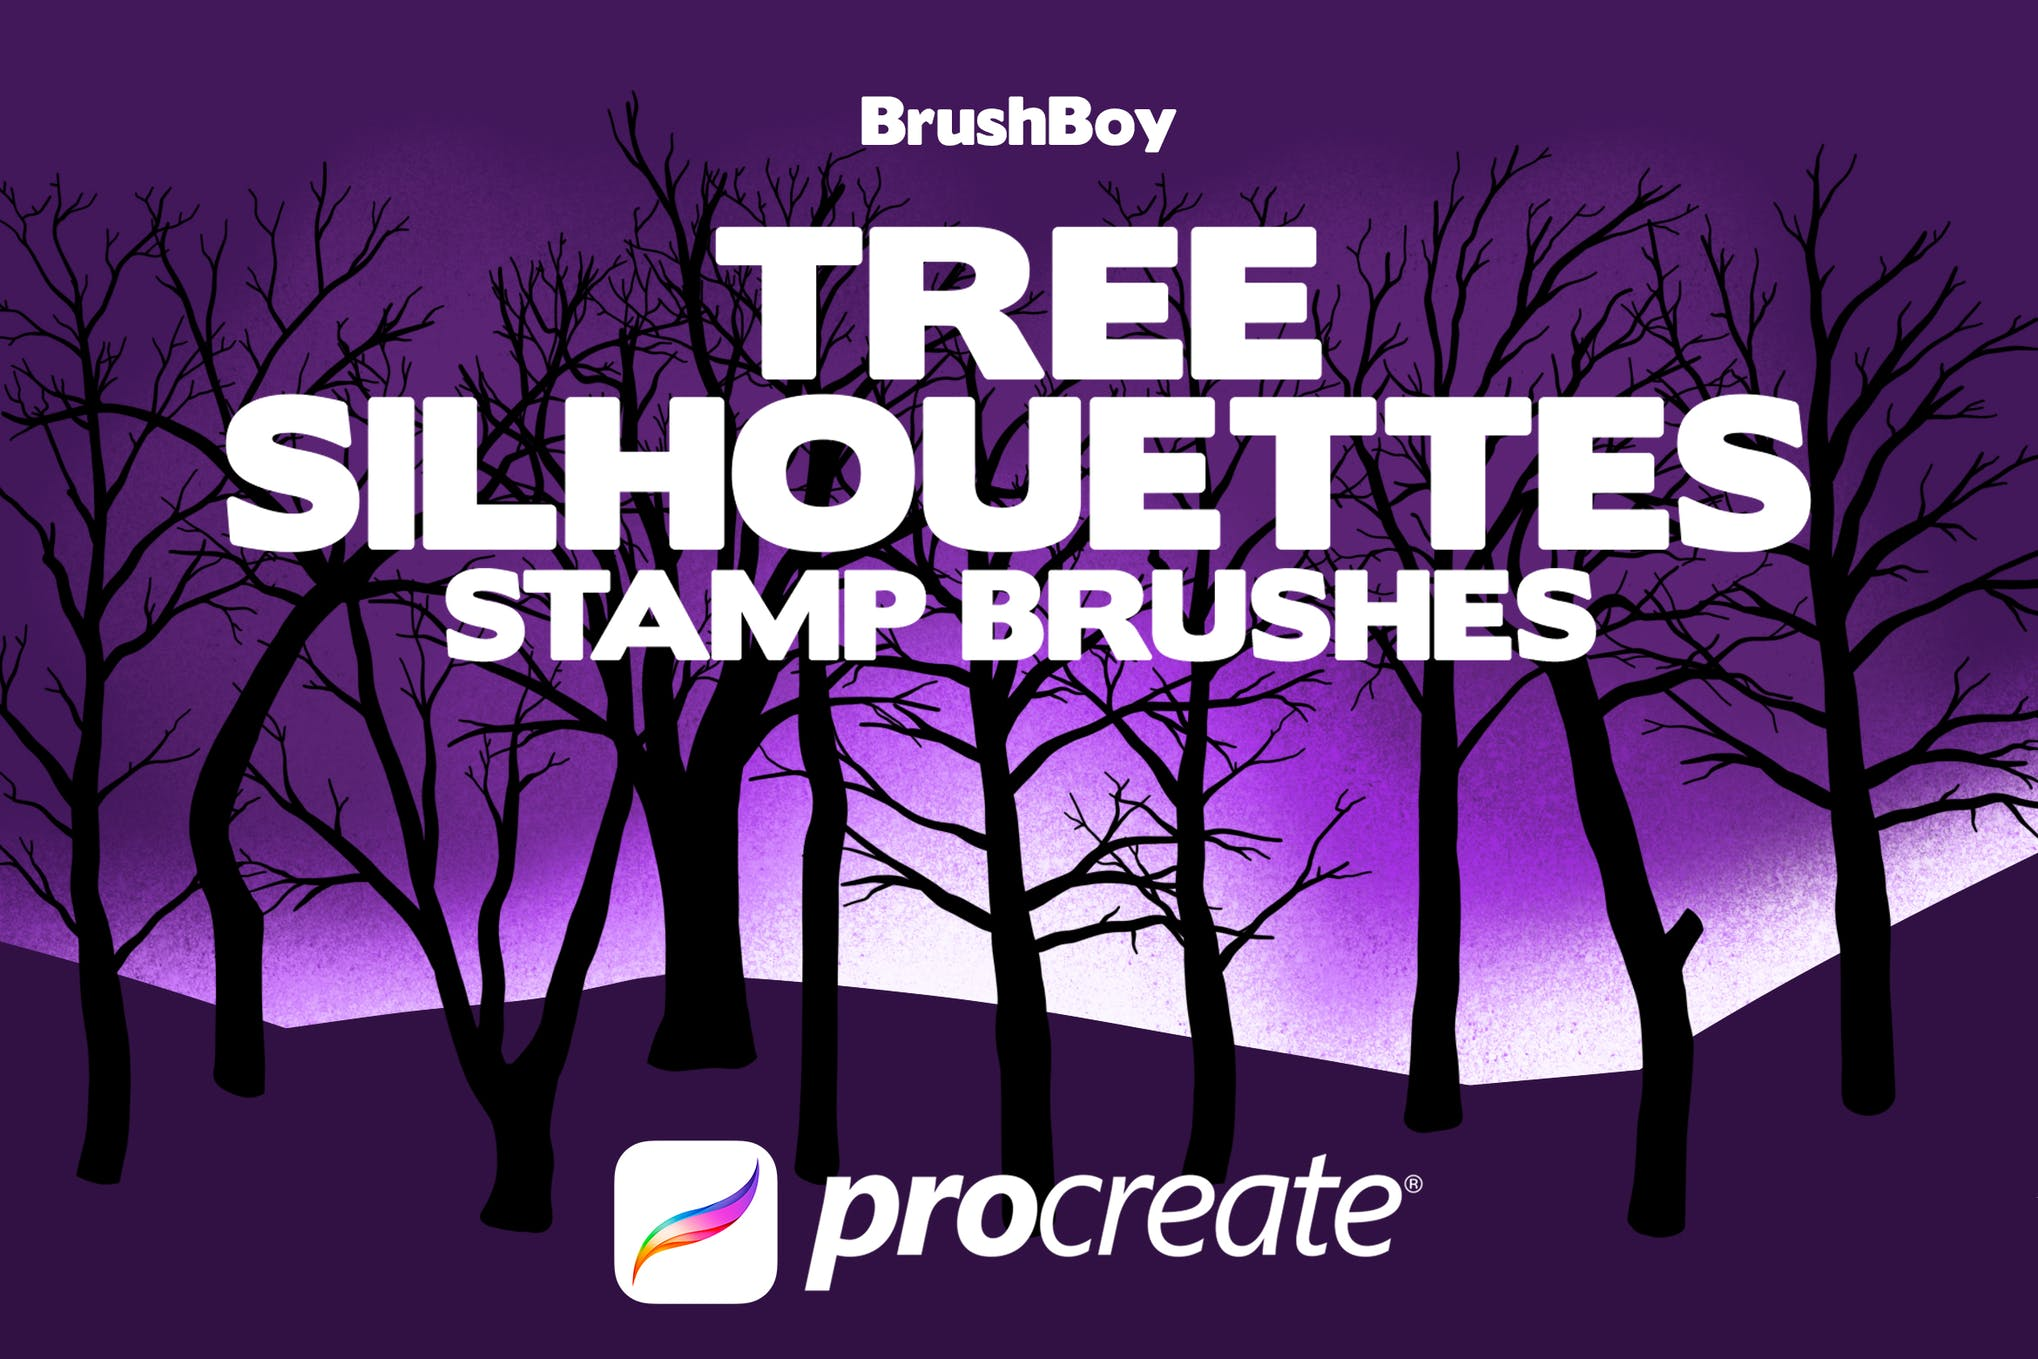 Procreate Tree Silhouette Stamp Brushes